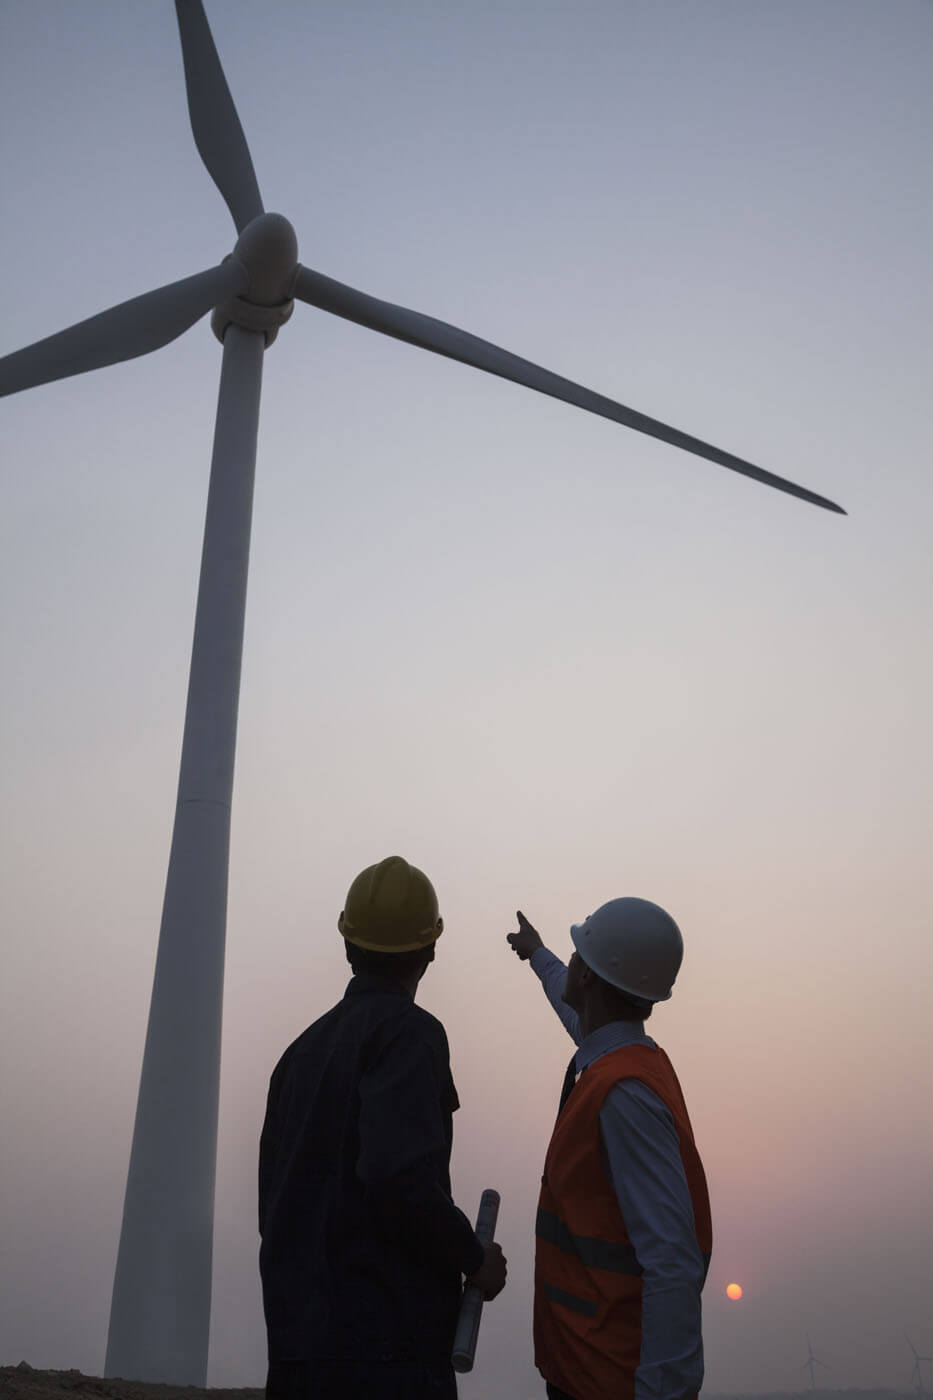 Engineers pointing at a wind turbine.